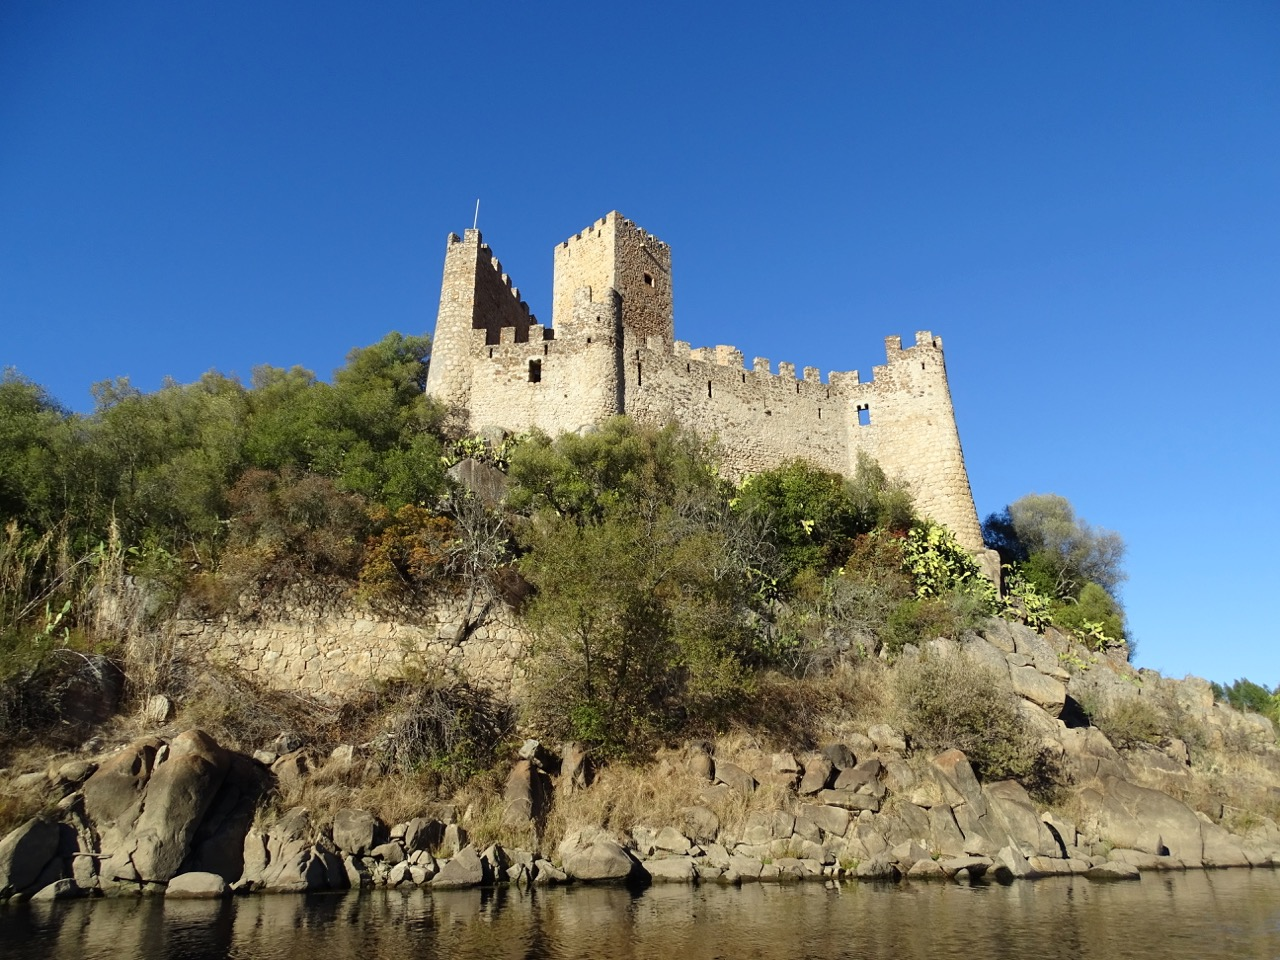 The Castle of Almourol